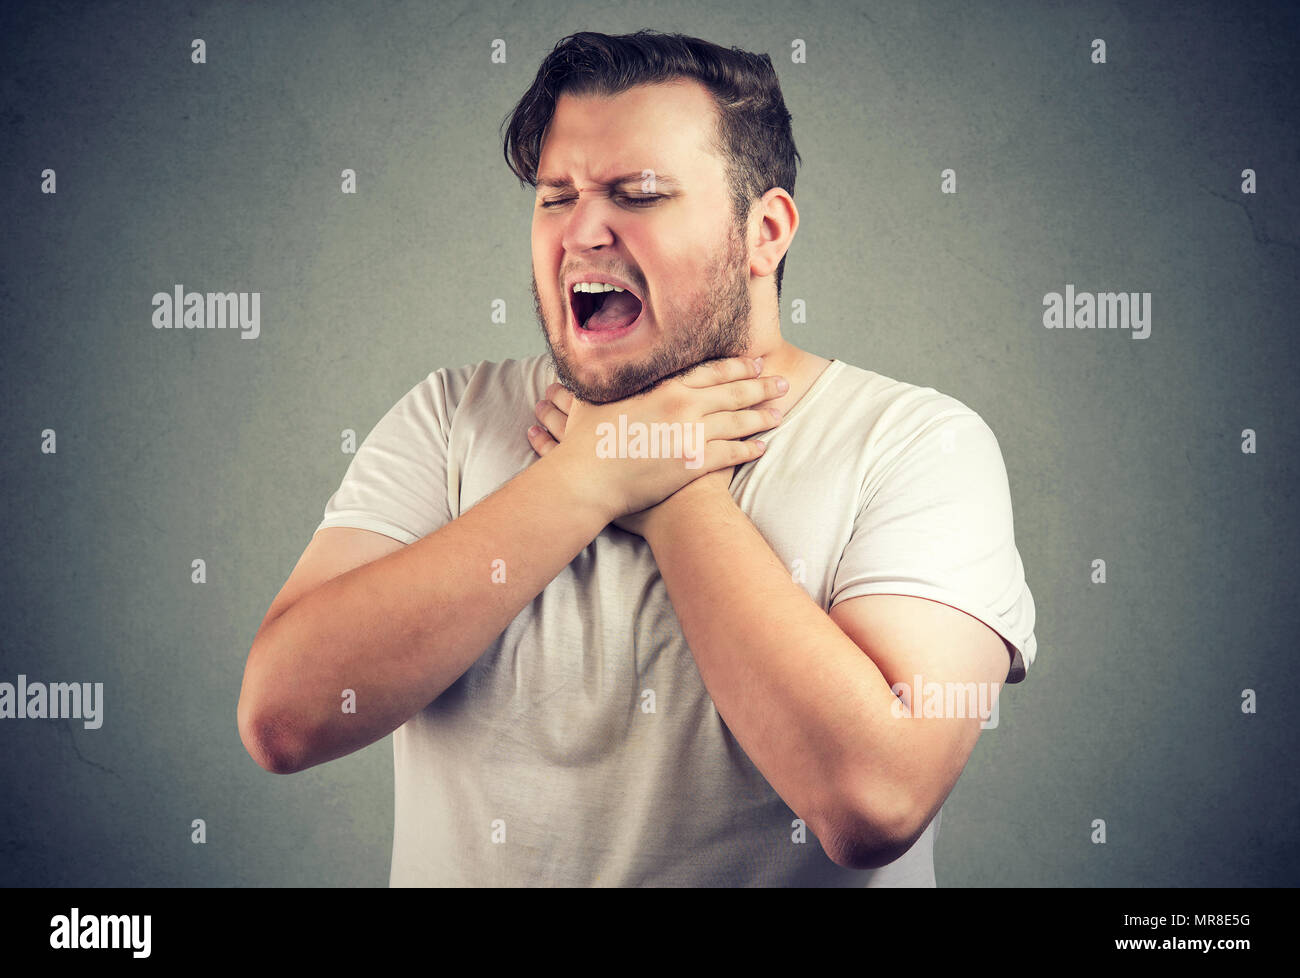 Chunky casual man frowning and suffocating having allergy and holding hands on neck with eyes closed. - Stock Image